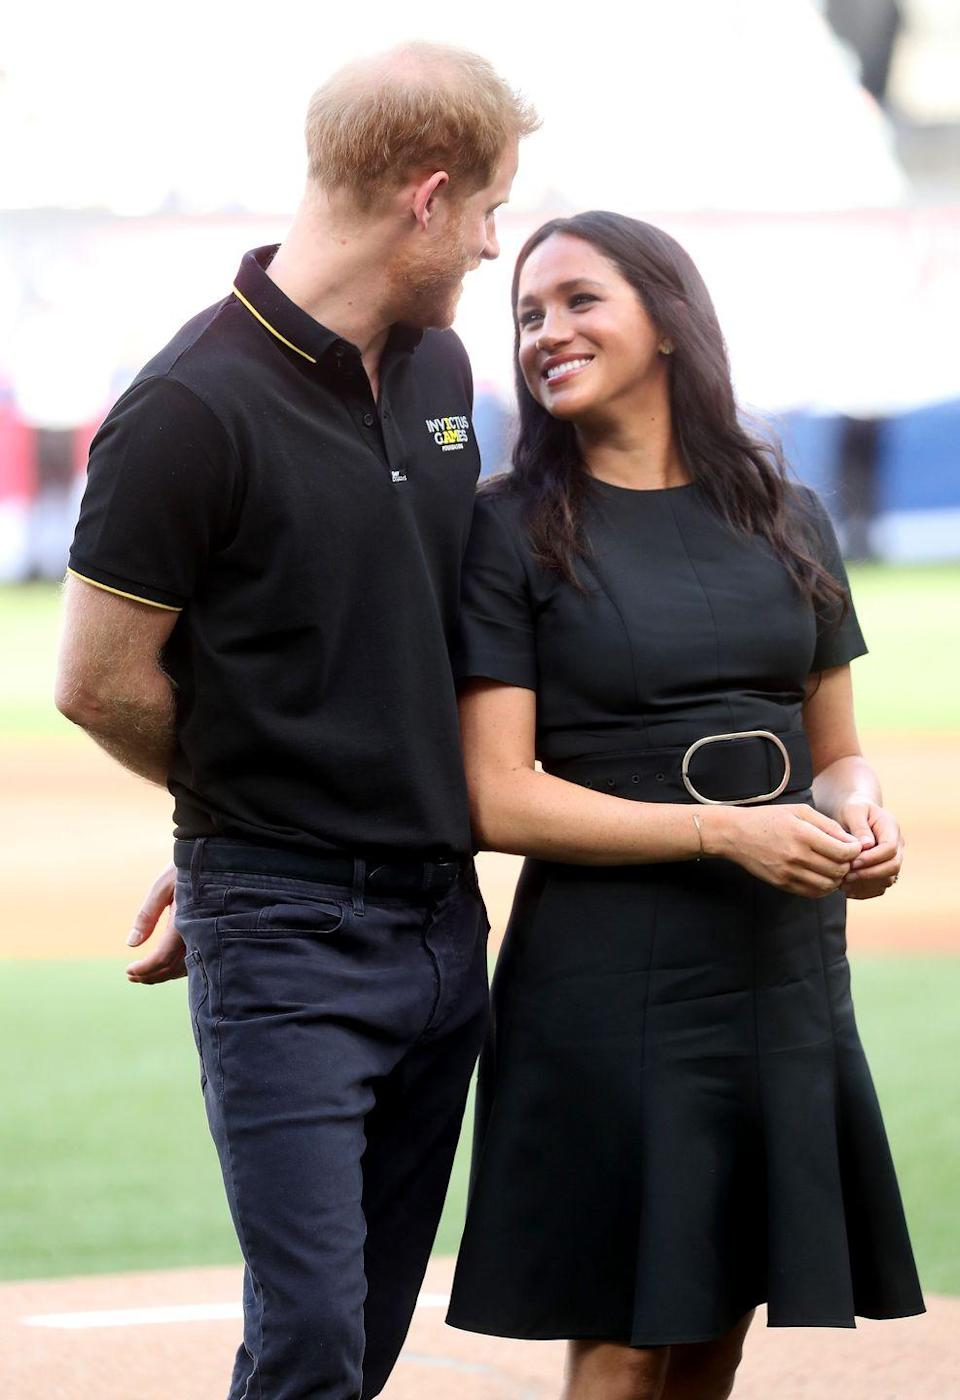 <p>Come to think of it, the Duchess of Sussex is a big fan of making a surprise entrance, like when she accompanied Prince Harry to the Red Sox vs. Yankees game in London. Although this move excites royal fans, it's generally not done by other royals due to the extreme security measures required when they travel. </p>